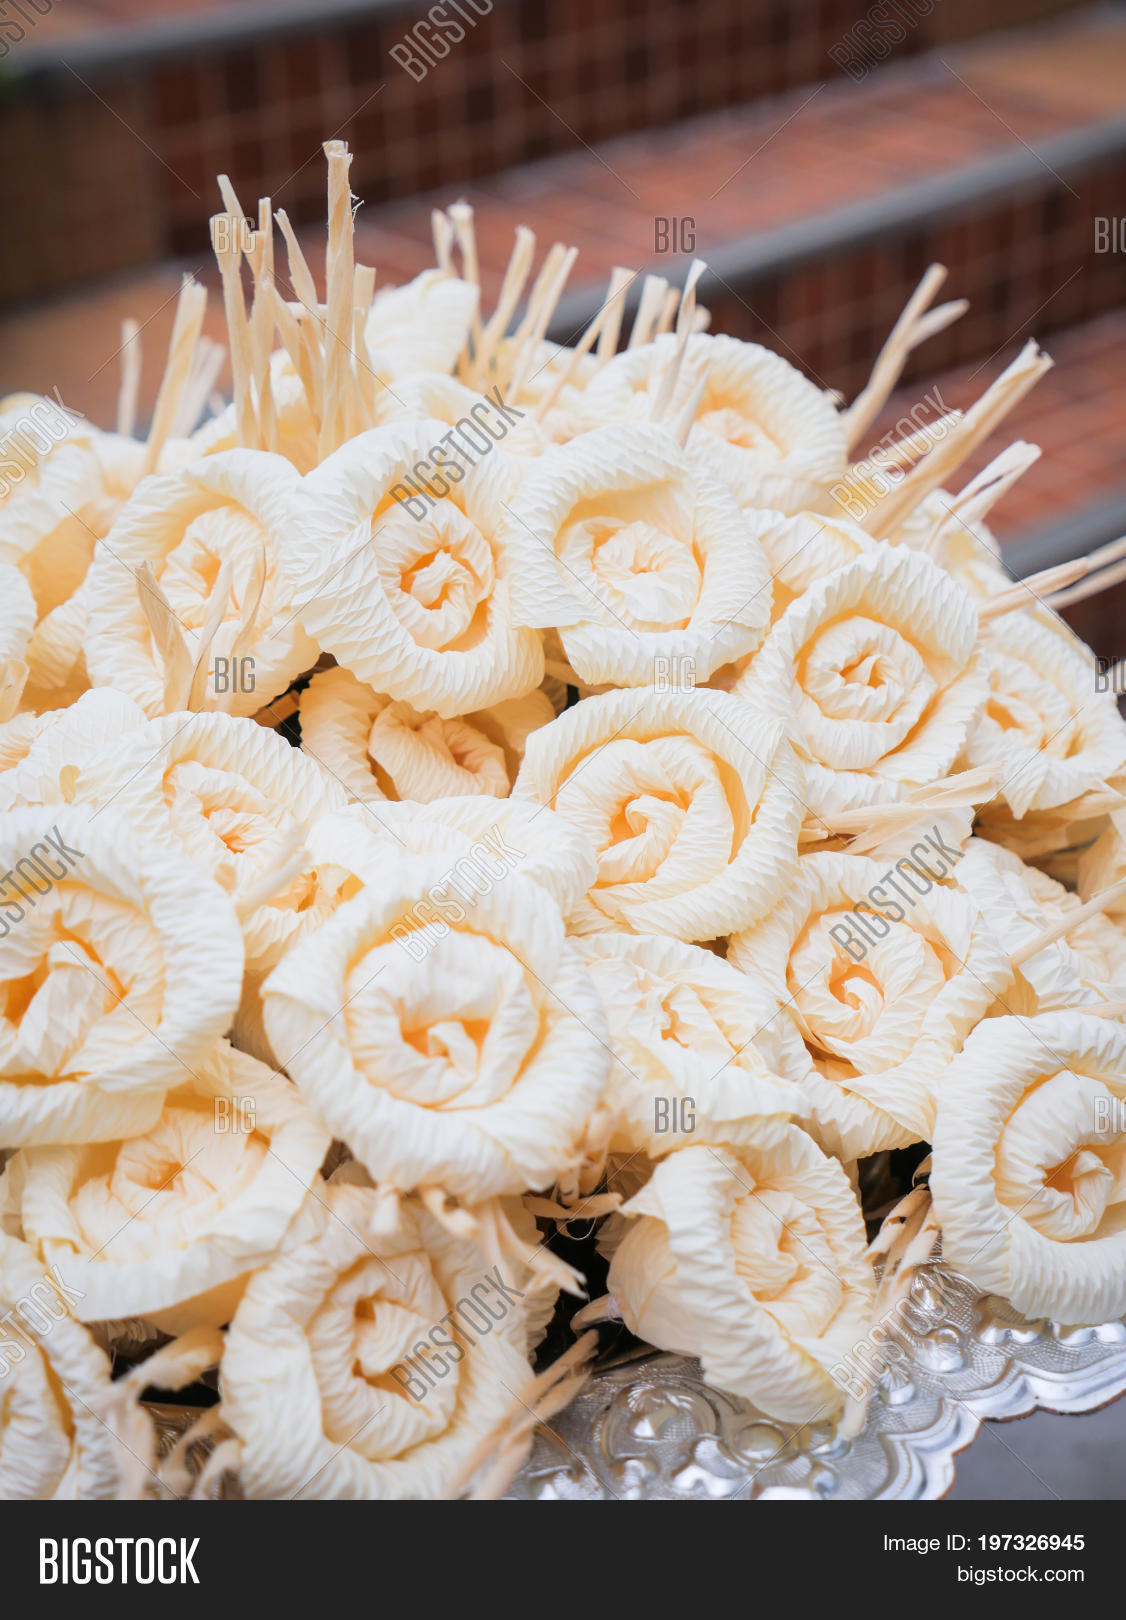 Dok mai chan thai image photo free trial bigstock thai artificial flowers used during a funeral kind of wood flower izmirmasajfo